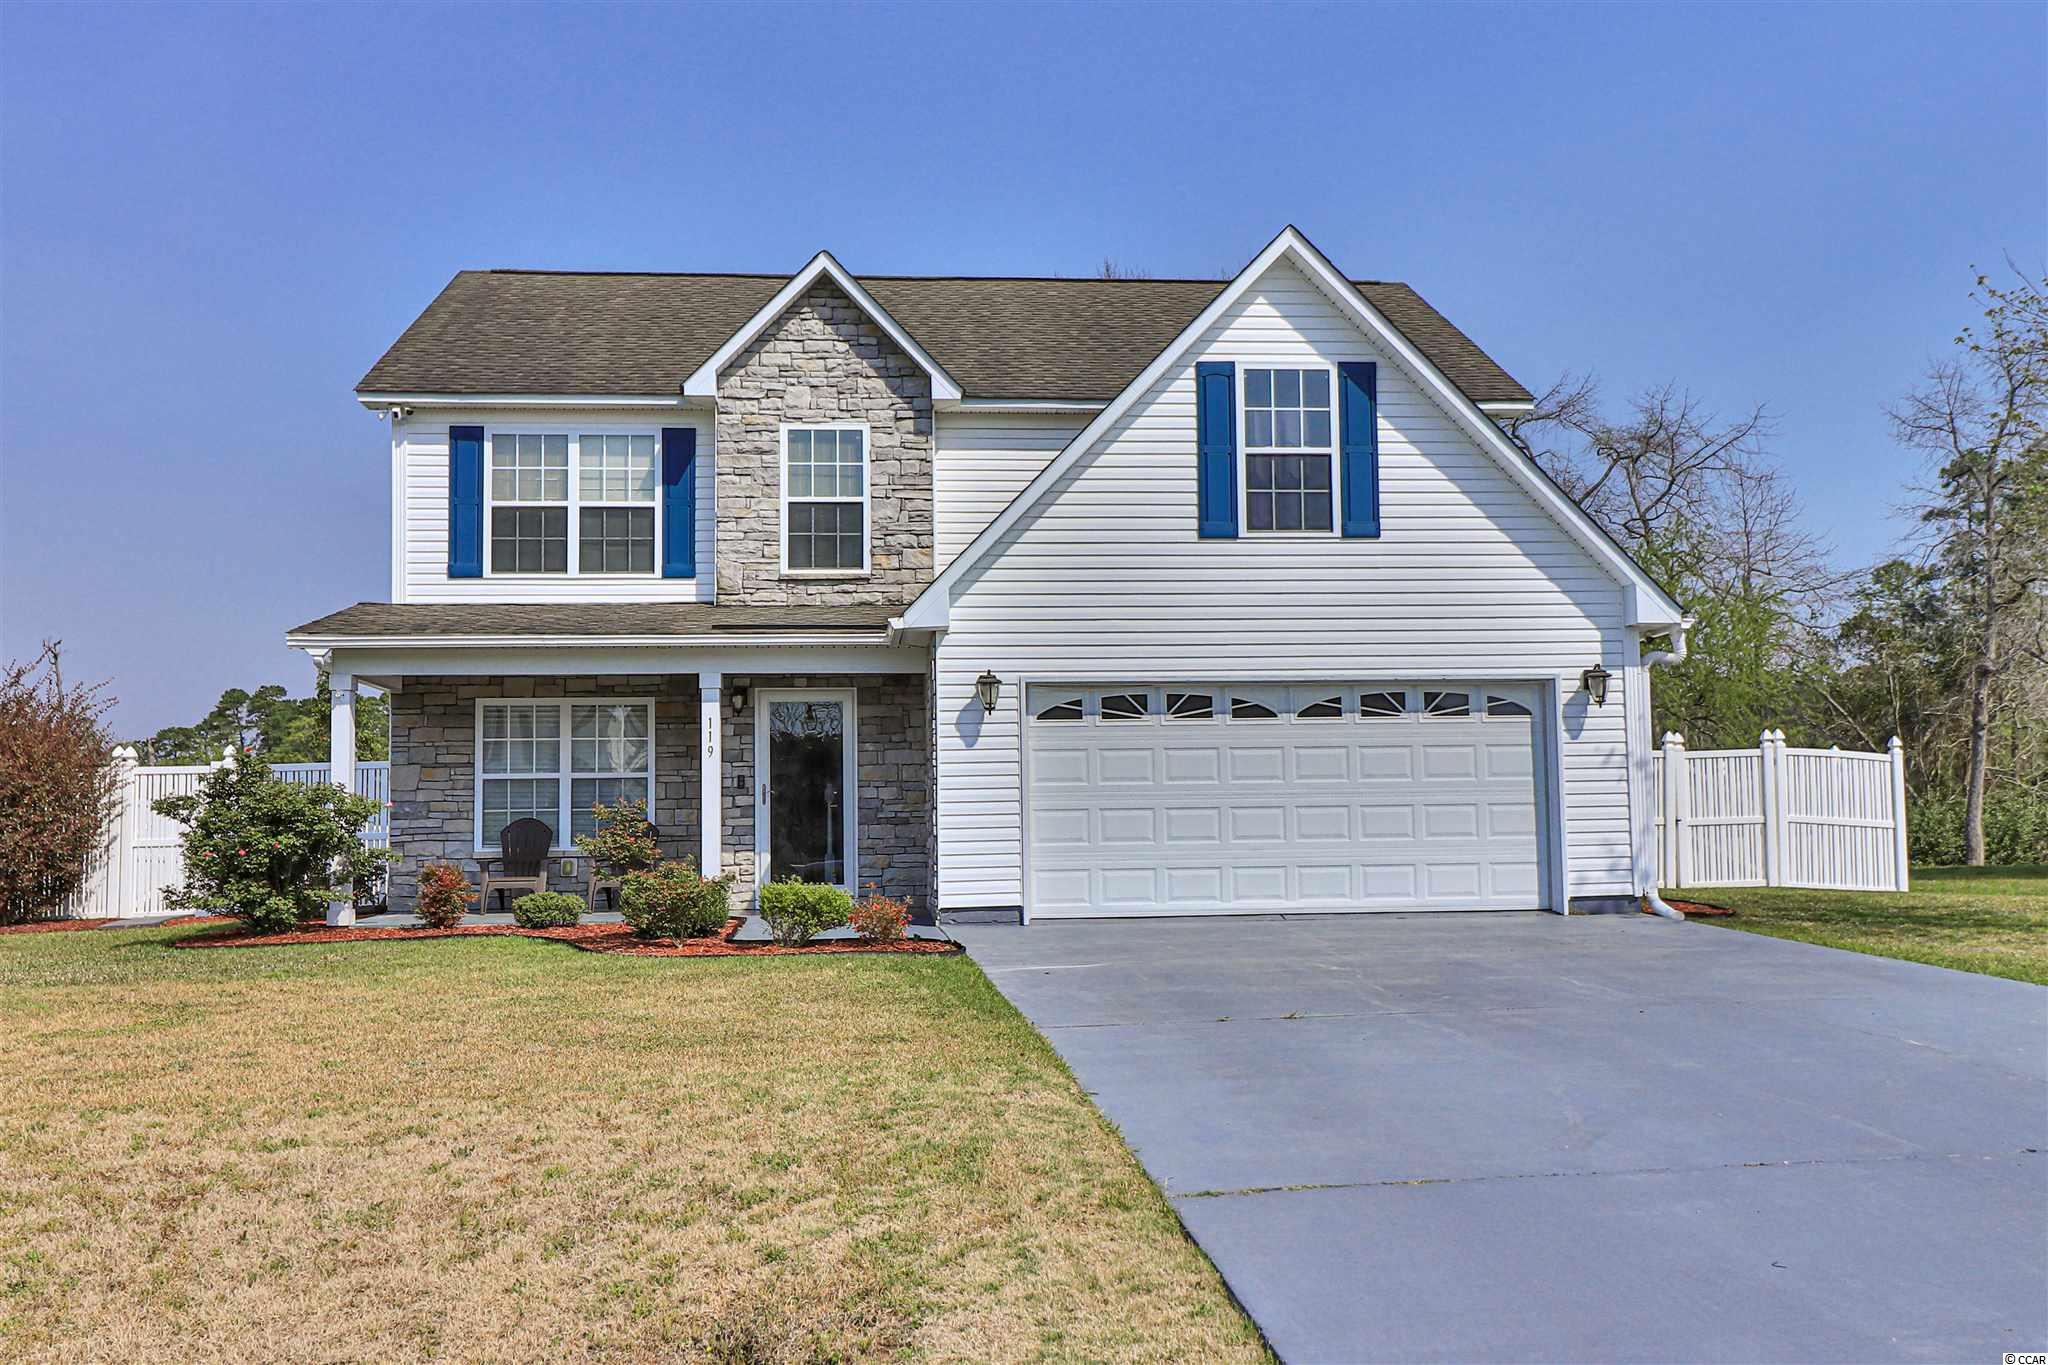 Don't miss out on this incredible opportunity! This stunning 4 bedroom, 3 full bathroom family home is located in the prestigious golf course community of Shaftesbury Green and features a bright and spacious floor plan! The country kitchen features beautiful white cabinetry, custom tile backsplash, granite countertops, and walk-in pantry plus a formal dining room! The comfortable living room features a warm fireplace and gleaming floors! The elegant master suite boasts a private bonus room/office and an impressive master bathroom! You will enjoy the custom back porch and fire pit perfect for grilling out and entertaining! Being in the spectacular neighborhood of Shaftesbury Green, you have access to Shaftesbury Glen Golf Course and Fish Club, the club house, and a large community pool with gorgeous Waccamaw River views! Book your showing today!